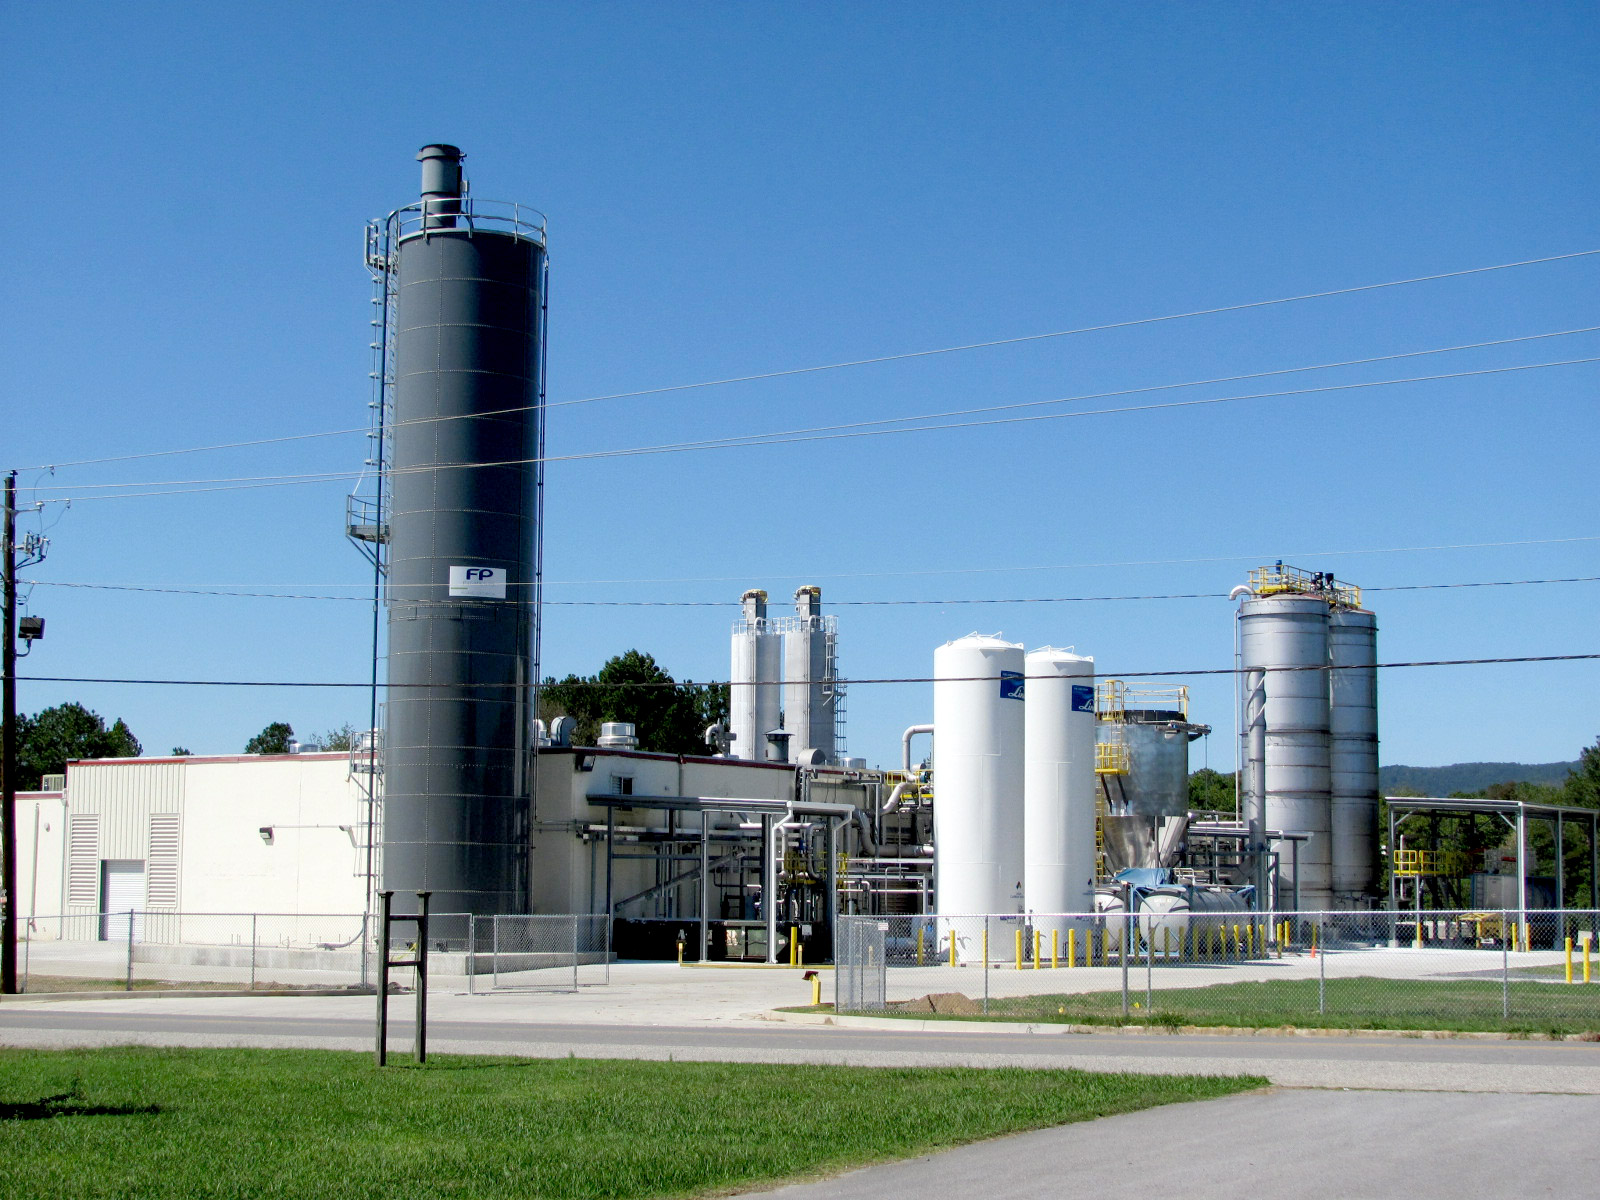 Opacity pigment production plant in Rome (GA), USA